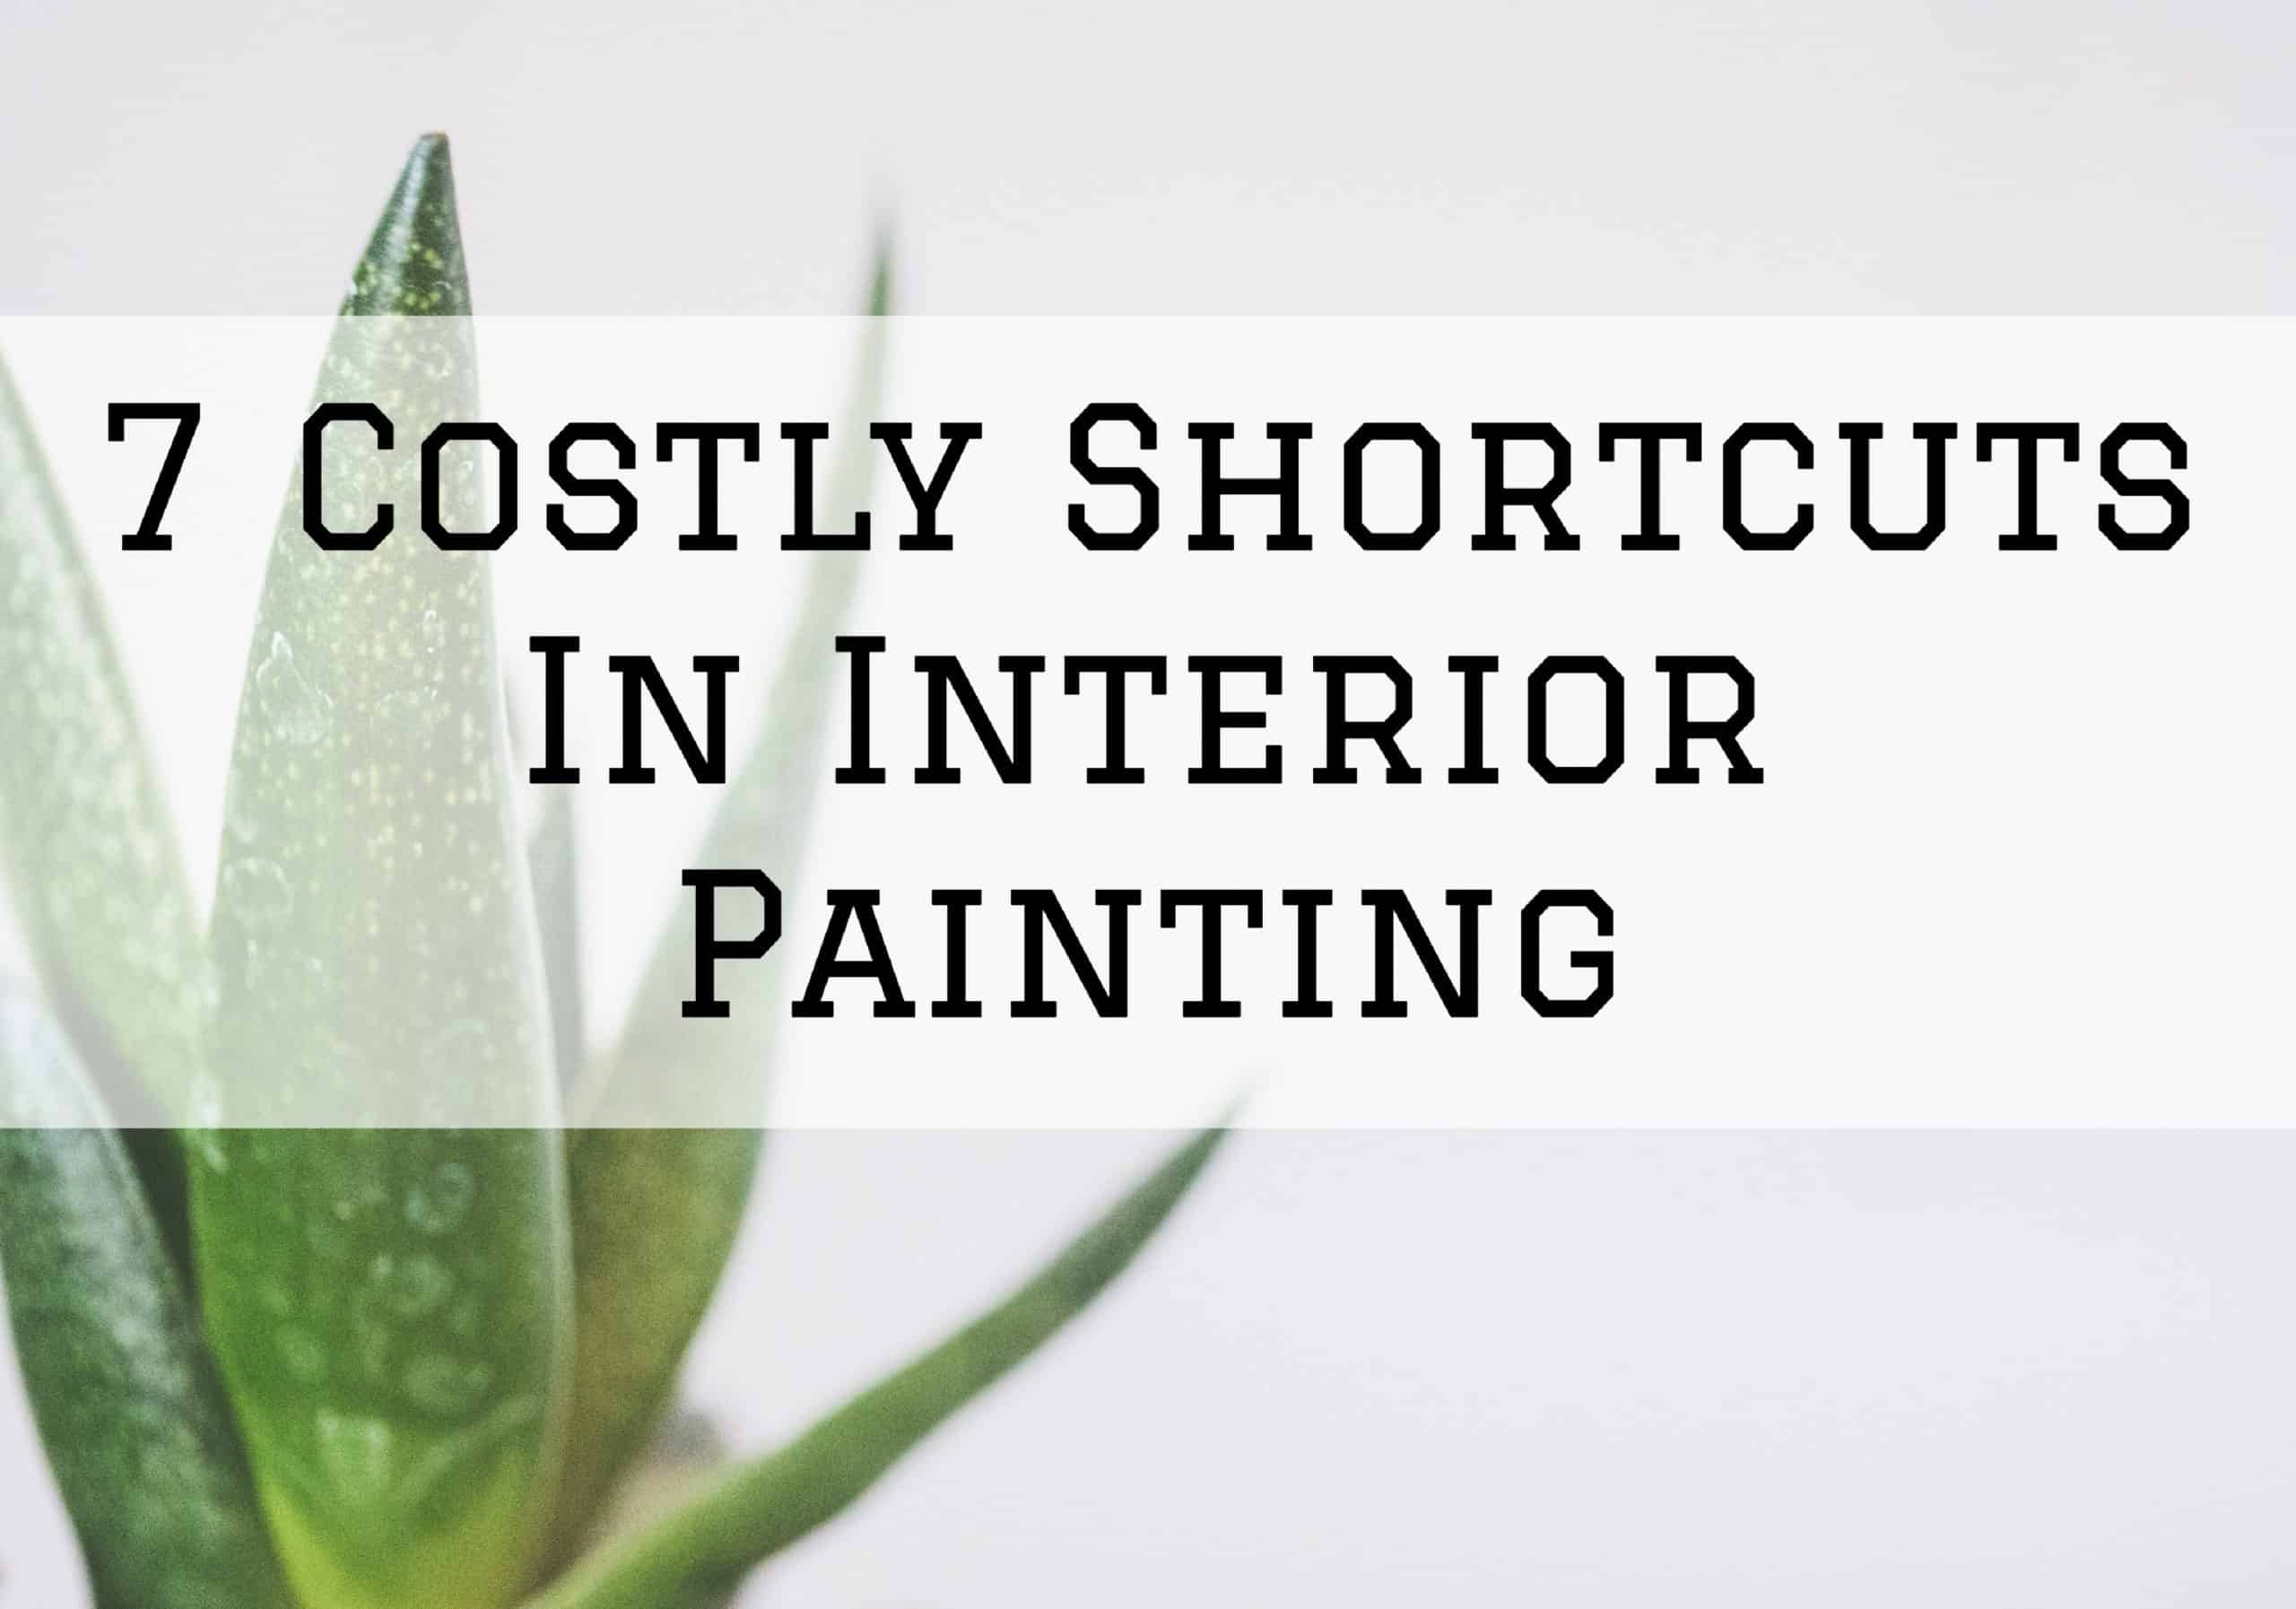 2020-07-17 Brush and Roll Painting Omaha NE Costly Interior Shortcuts